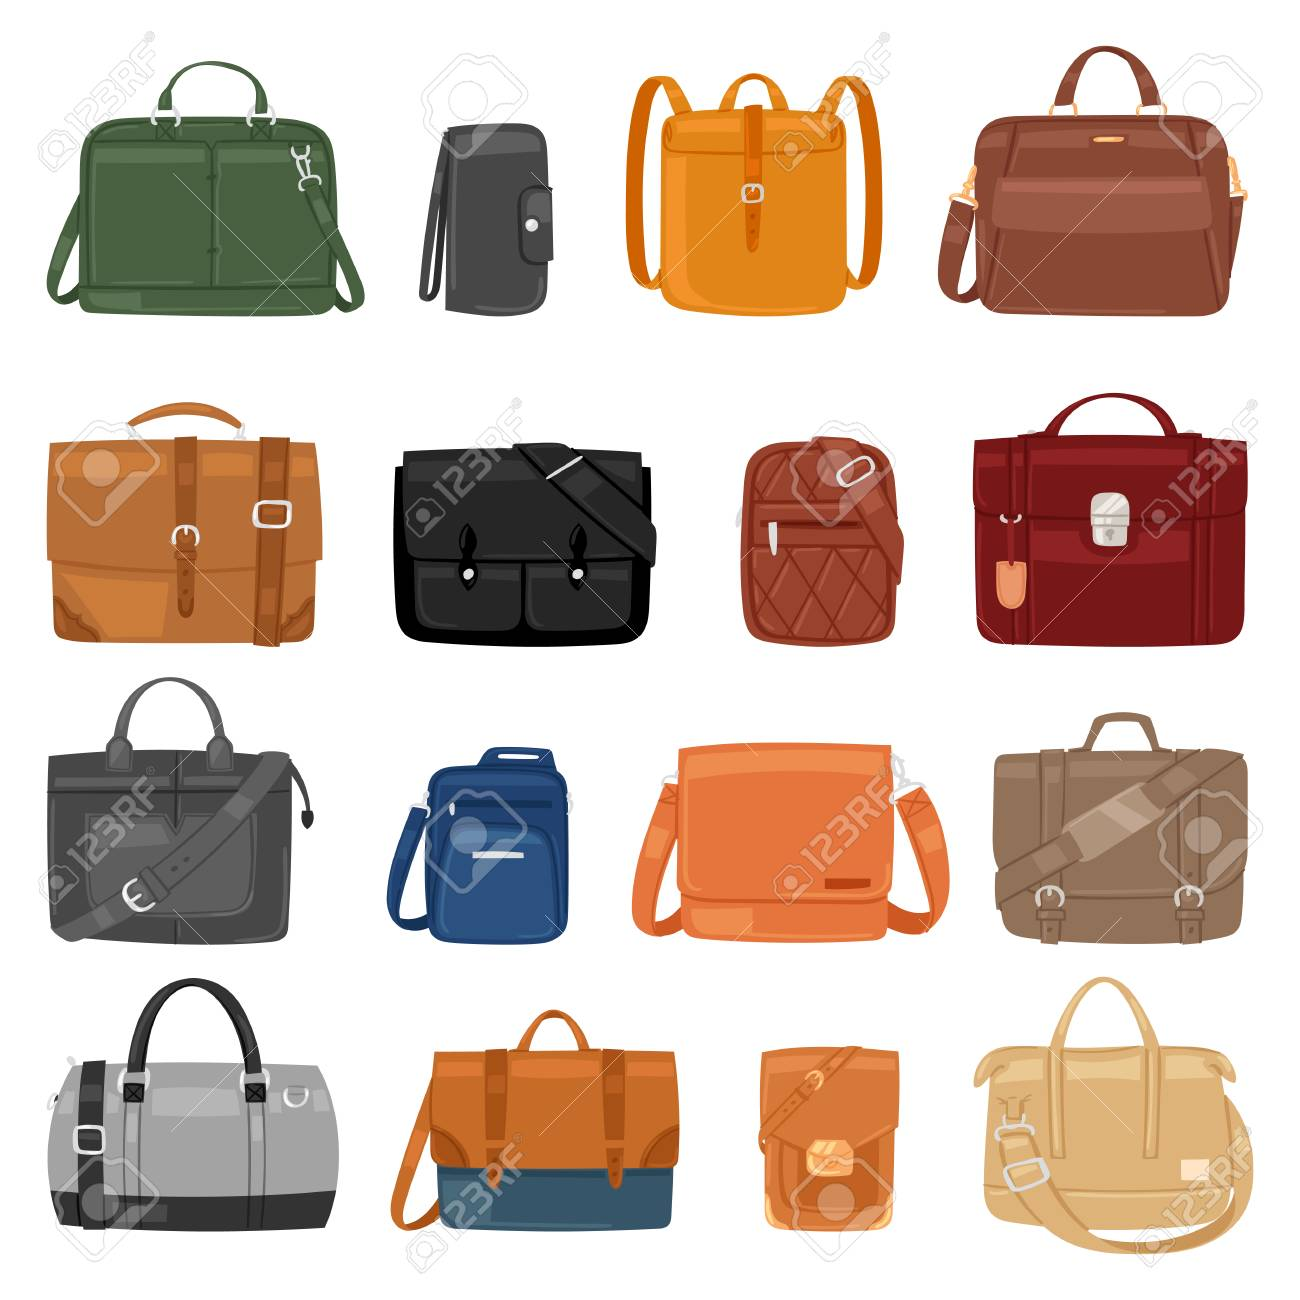 Man bag vector men fashion handbag or business briefcase and leather notecase of businessman illustration manlike bagged set of male baggy accessory bagpack isolated on white background - 101451629